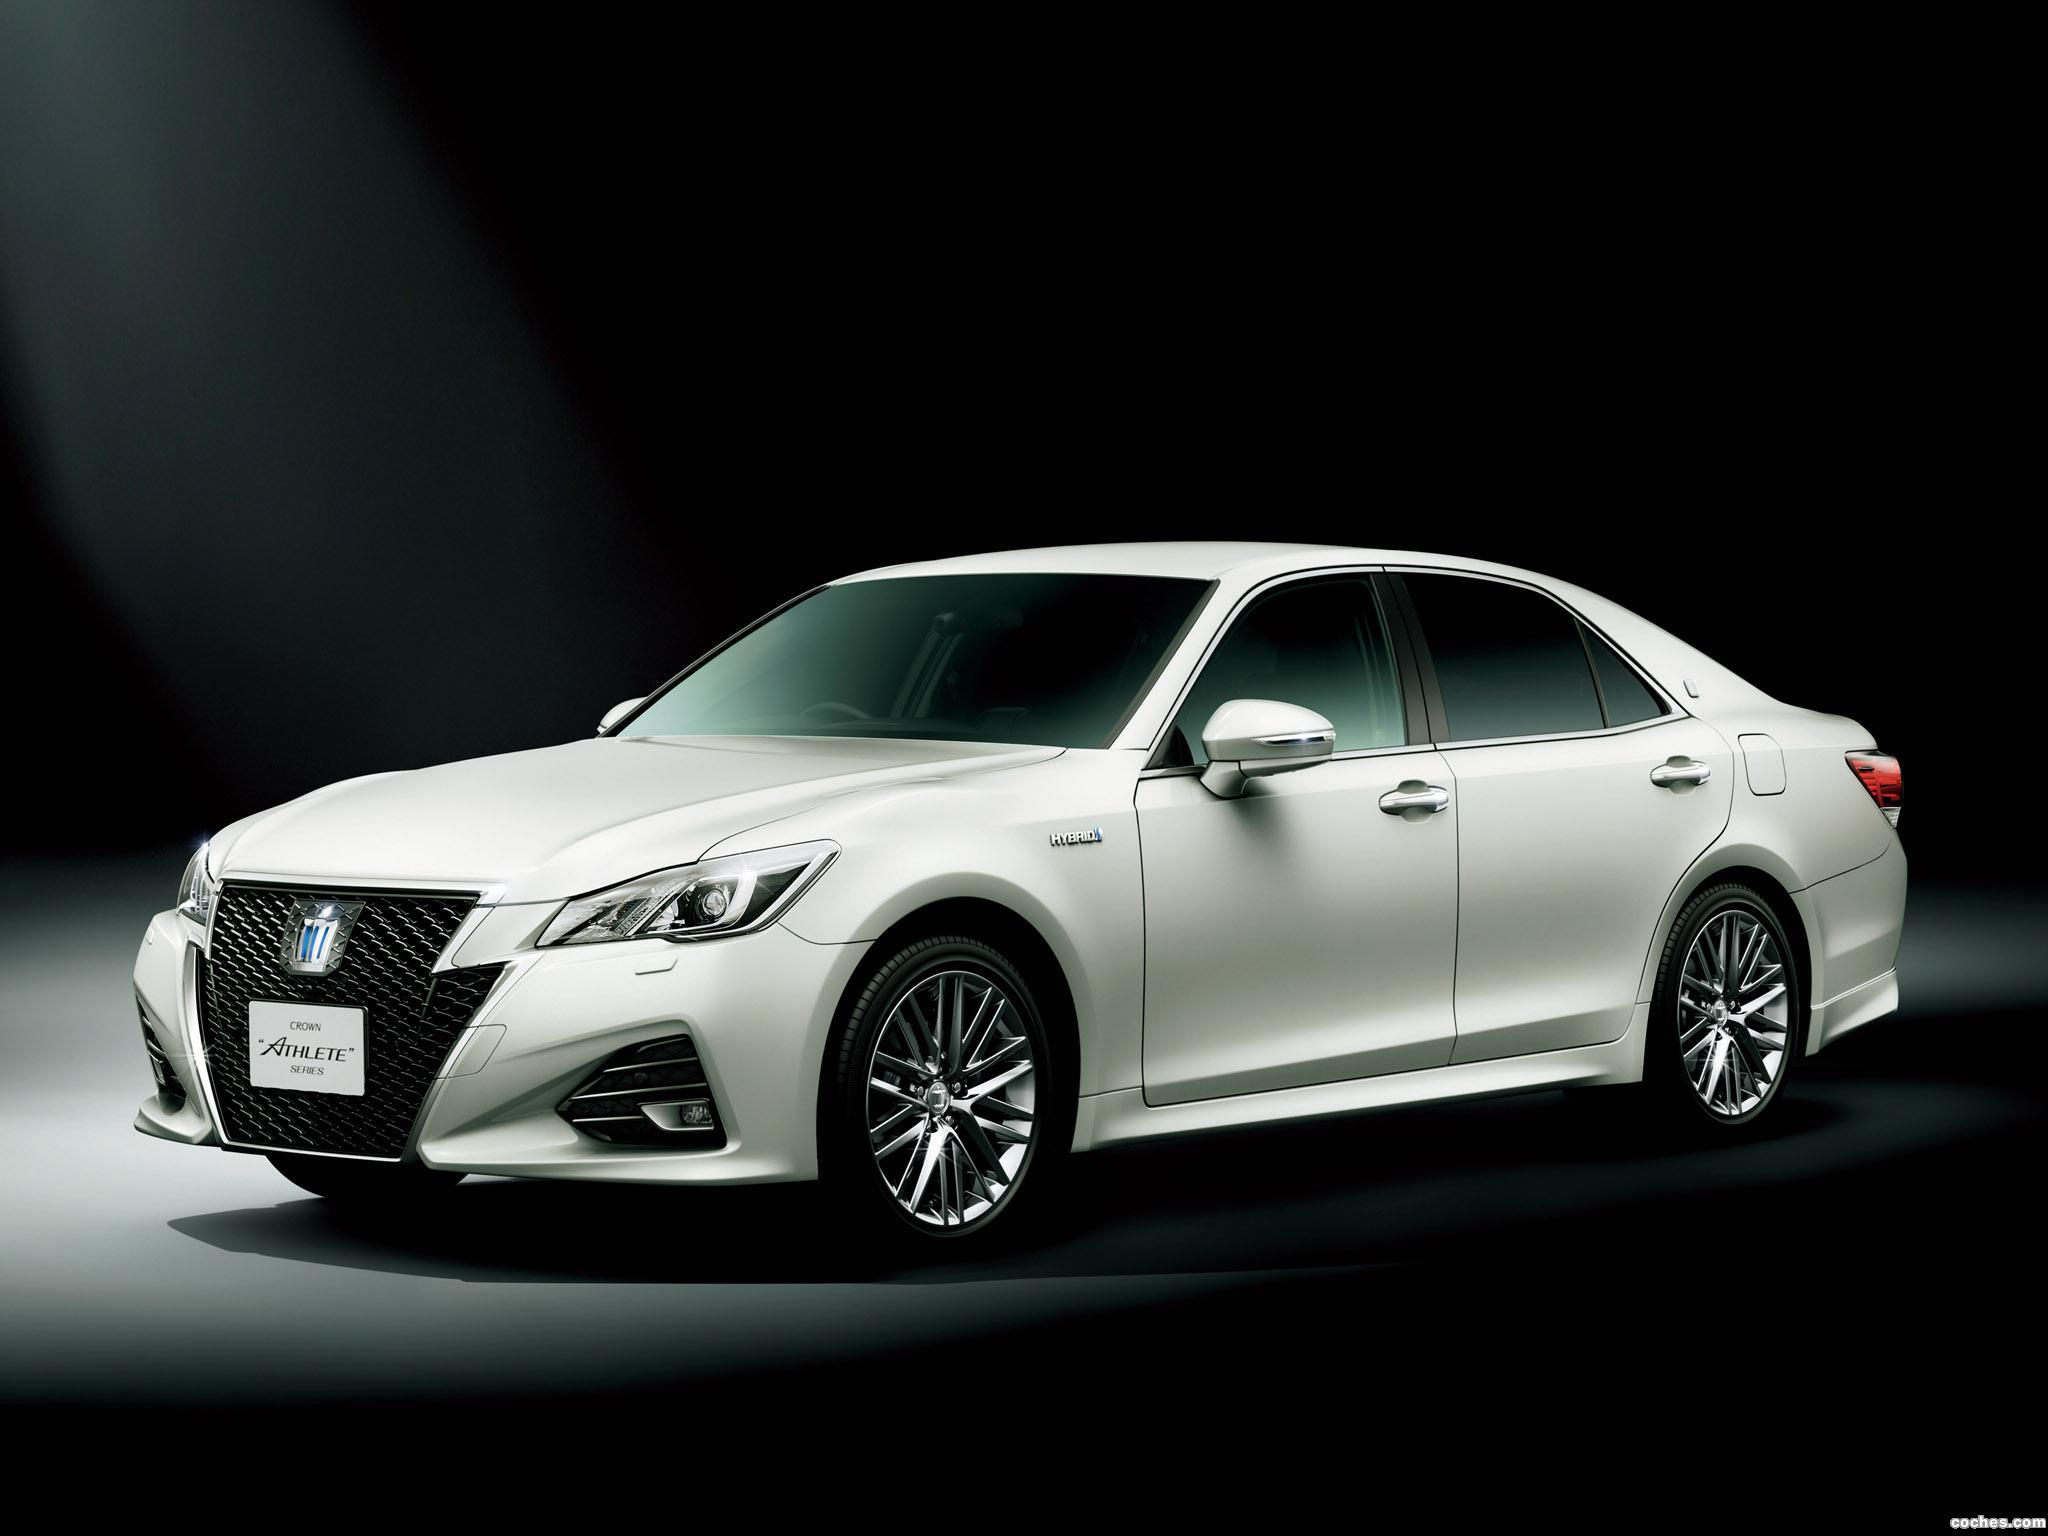 Foto 0 de Toyota Crown Athlete G Hybrid S210 2015